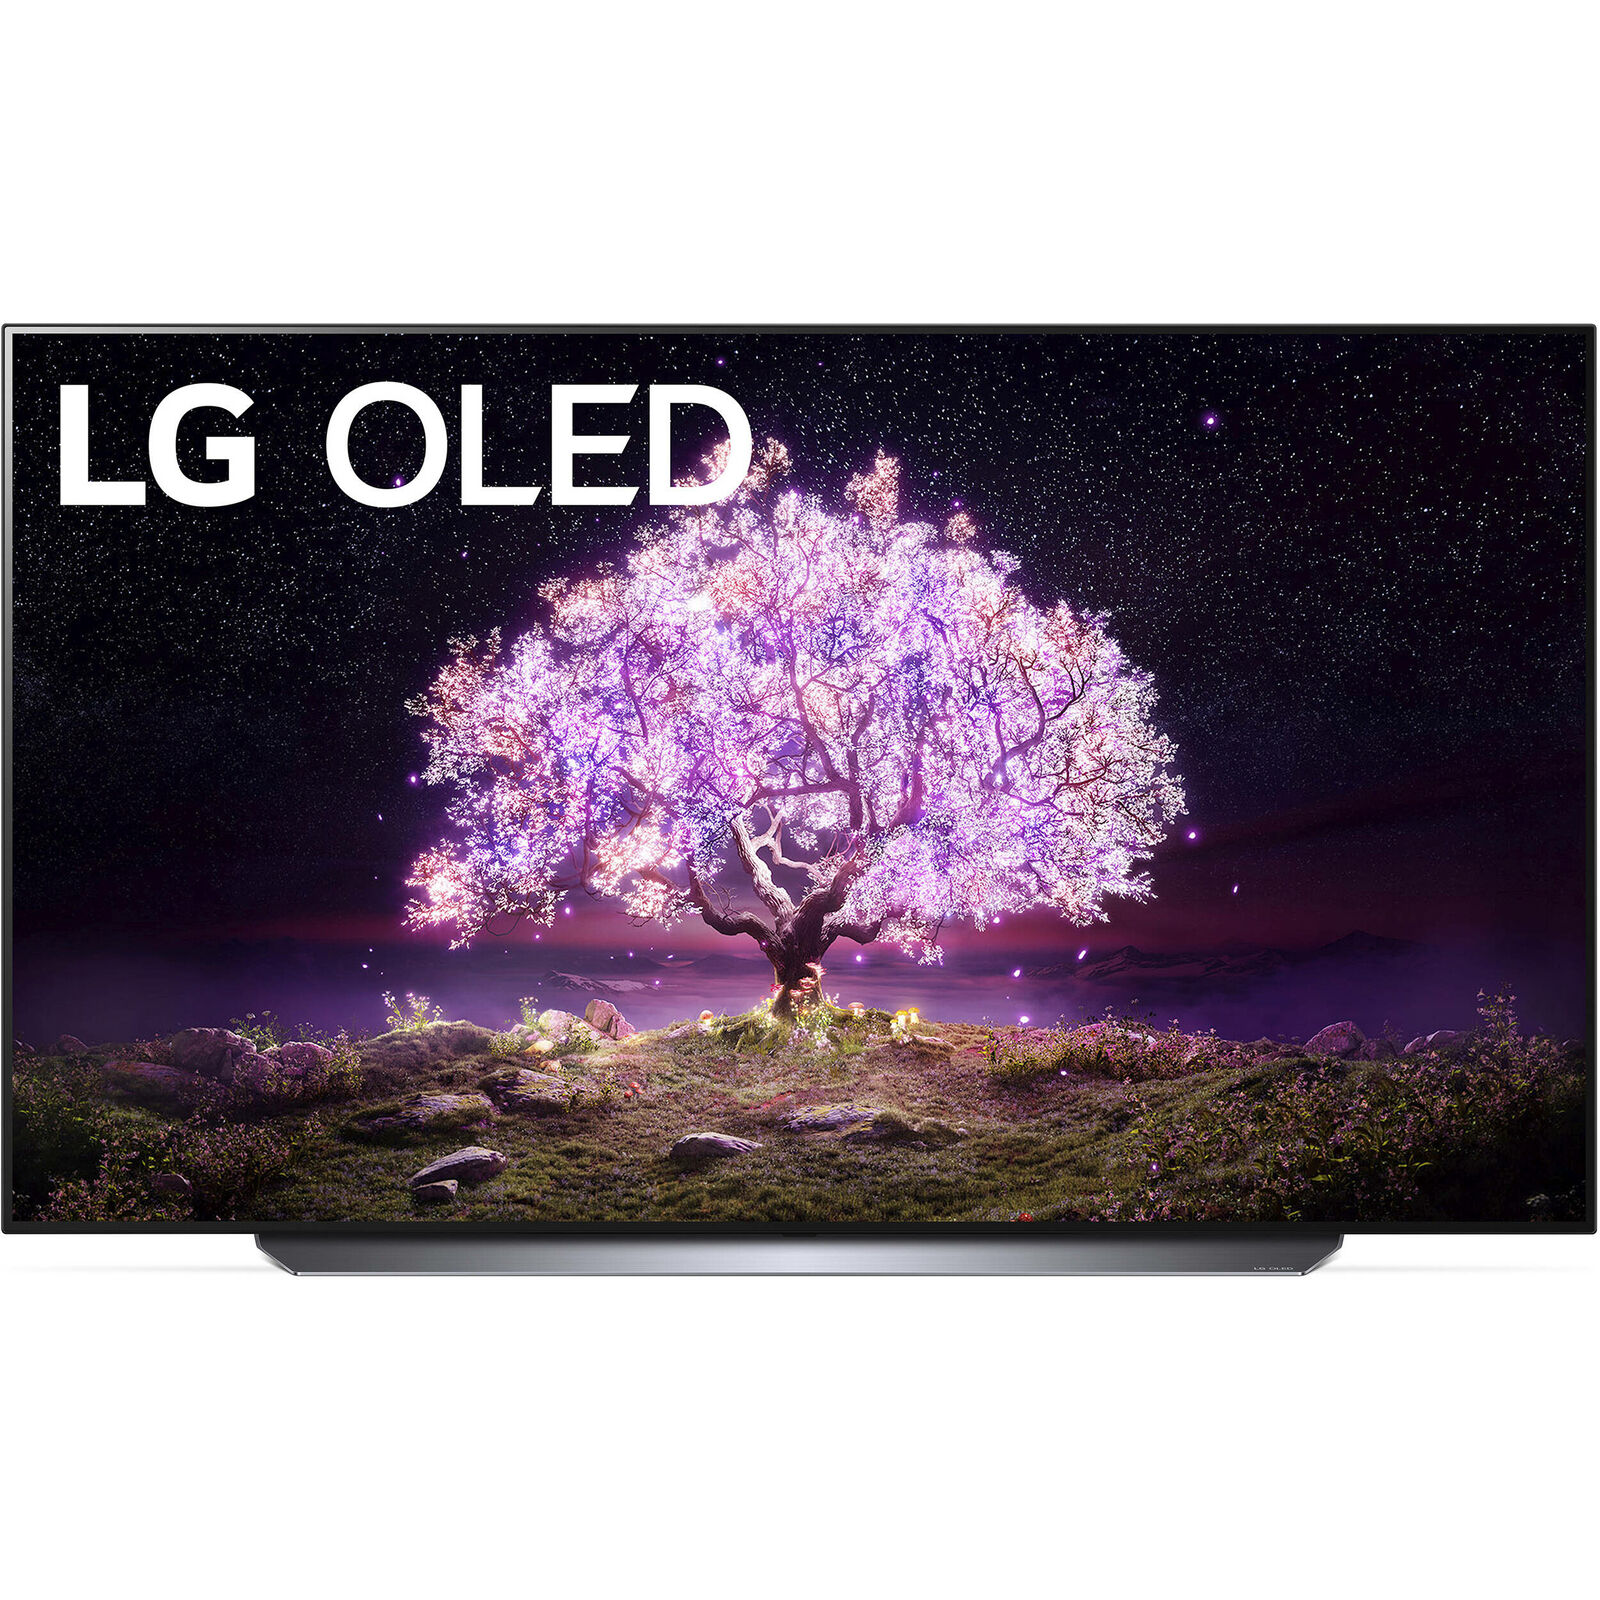 LG C1PU 55 HDR 4K Ultra HD Smart OLED TV - 2021 Model. Available Now for 1796.99